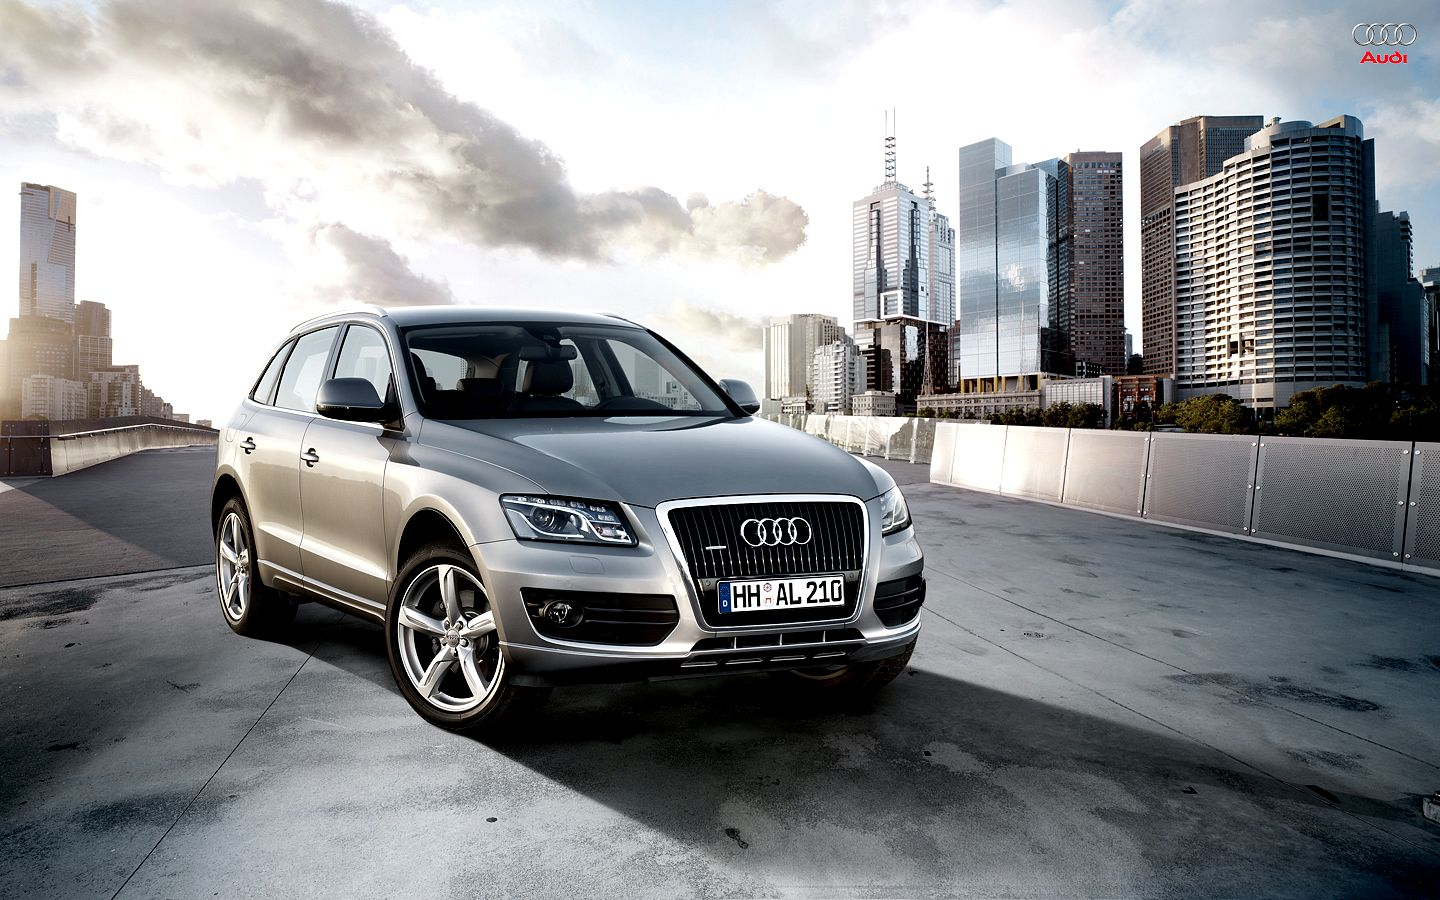 Audi Q5 Wallpapers Pixell Wallpapers